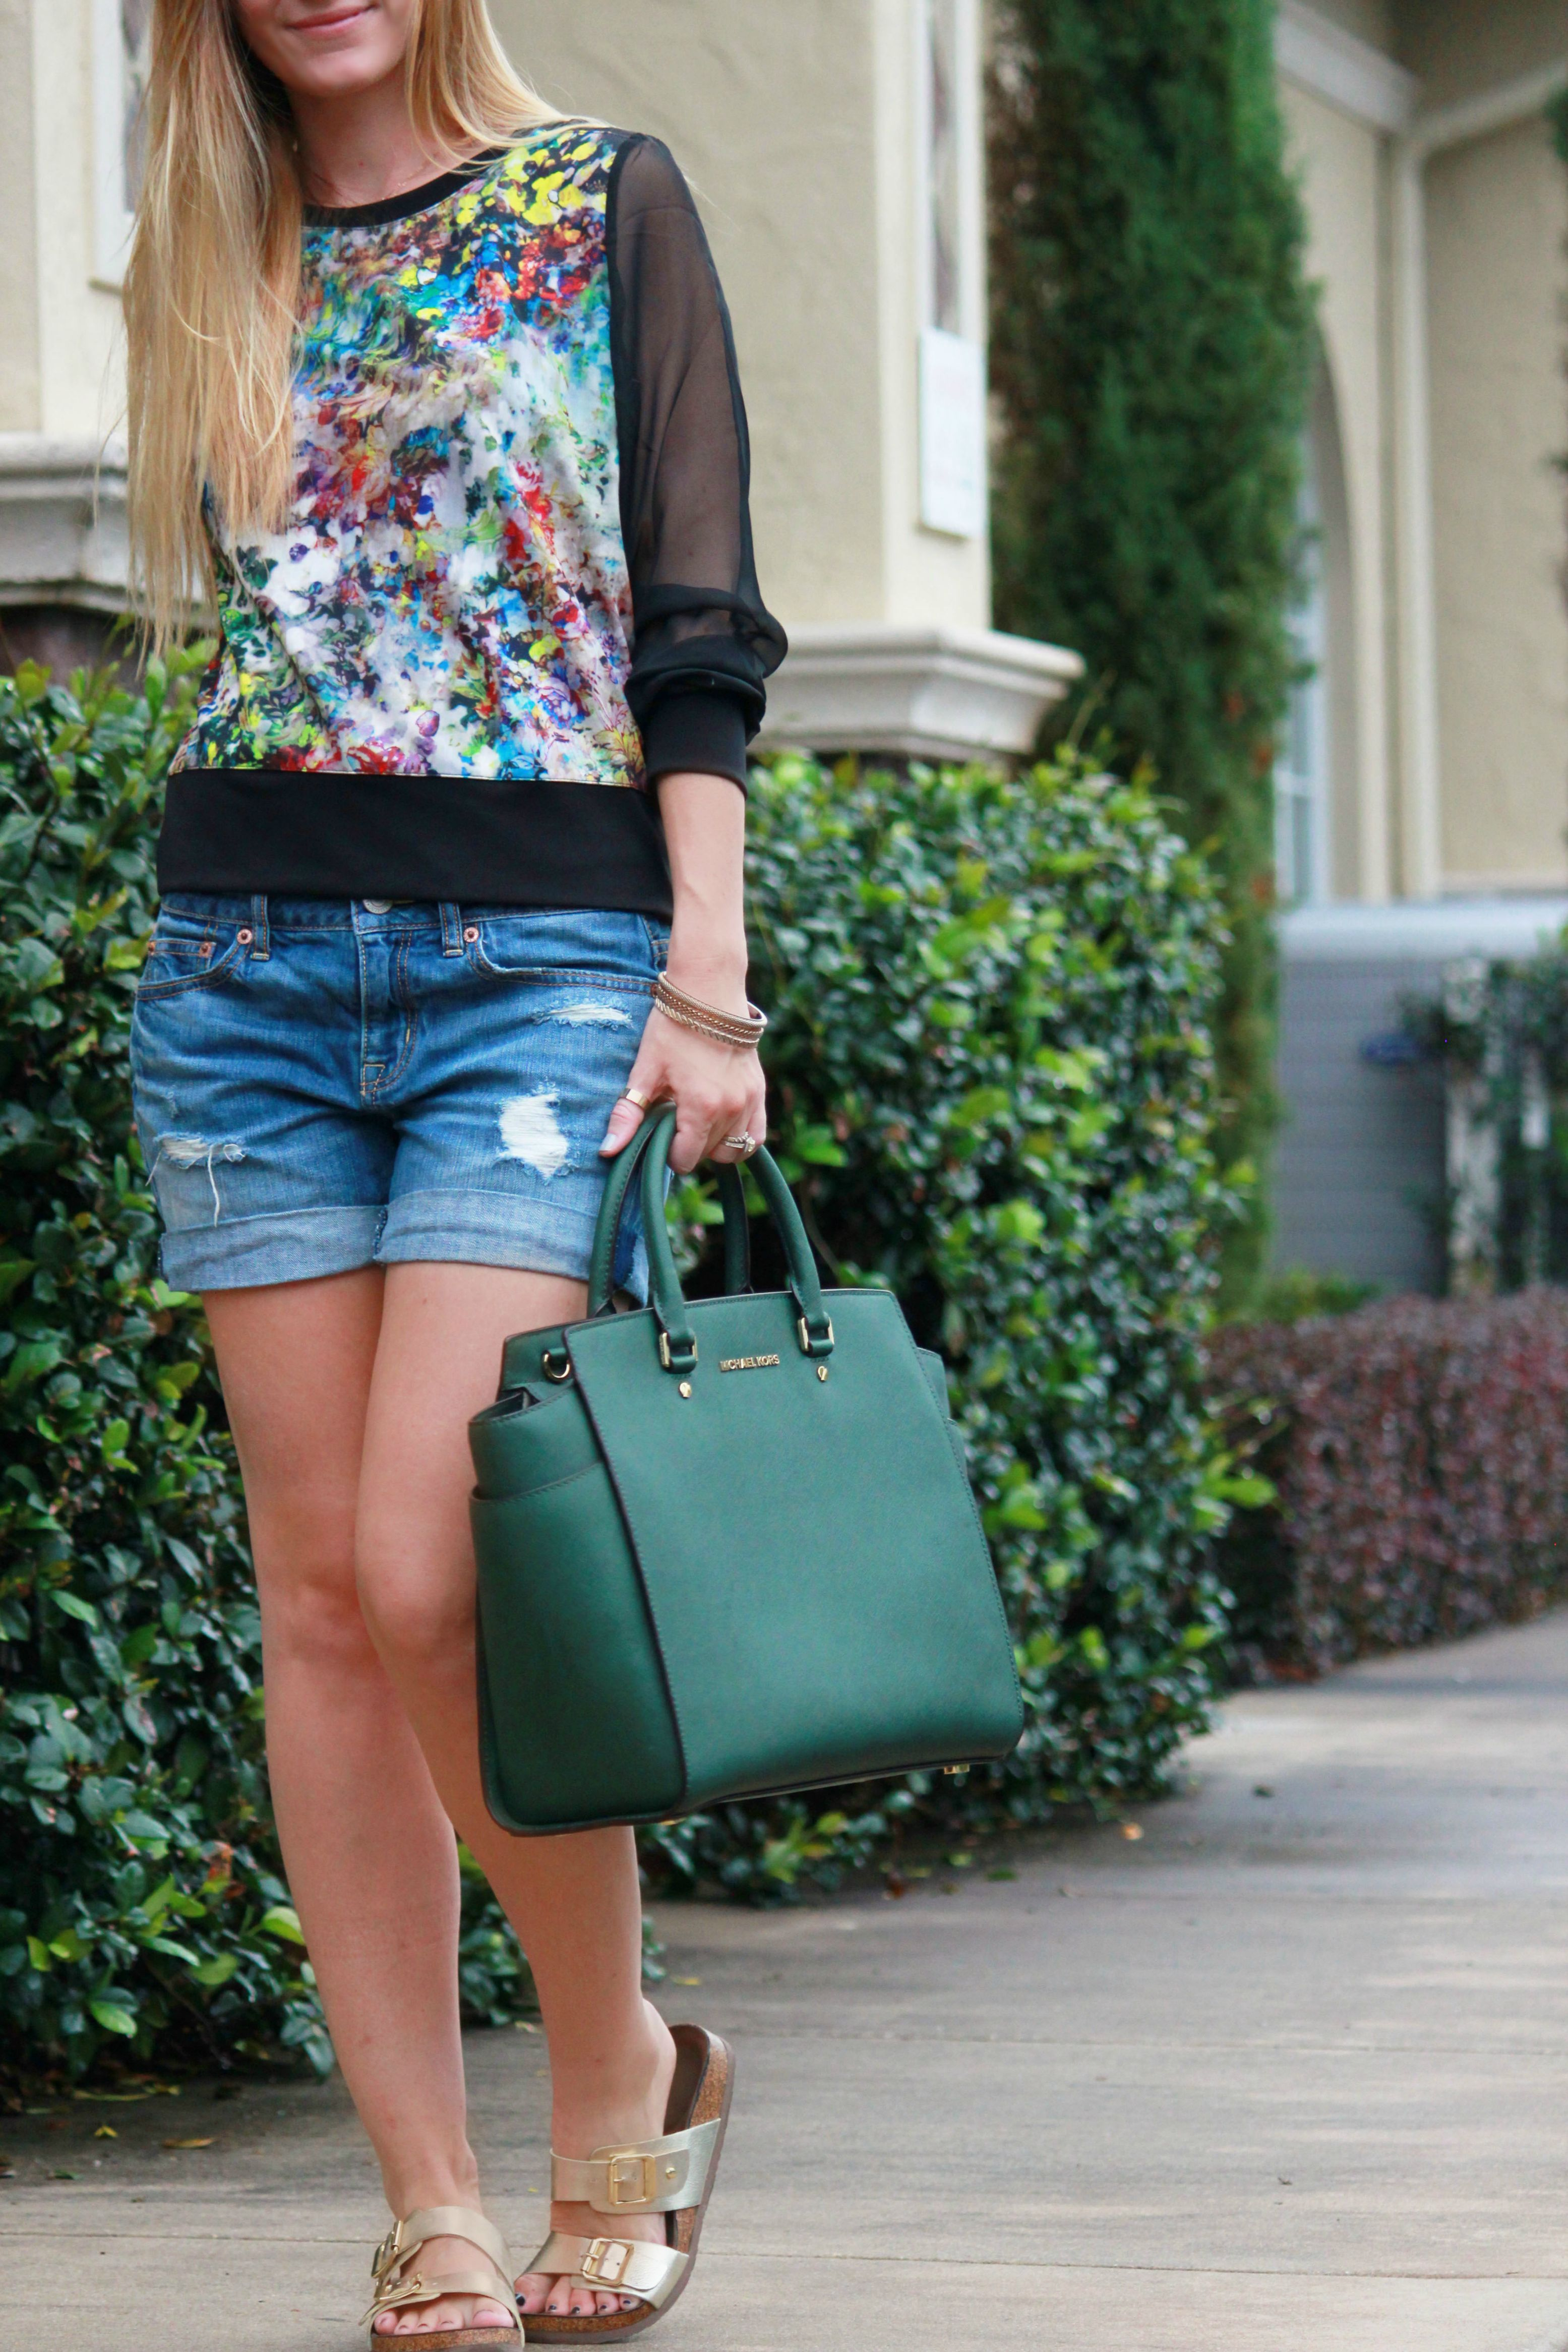 sheer sleeved blouse paired with boyfriend jeans, selma michael kors bag, and birkinstocks